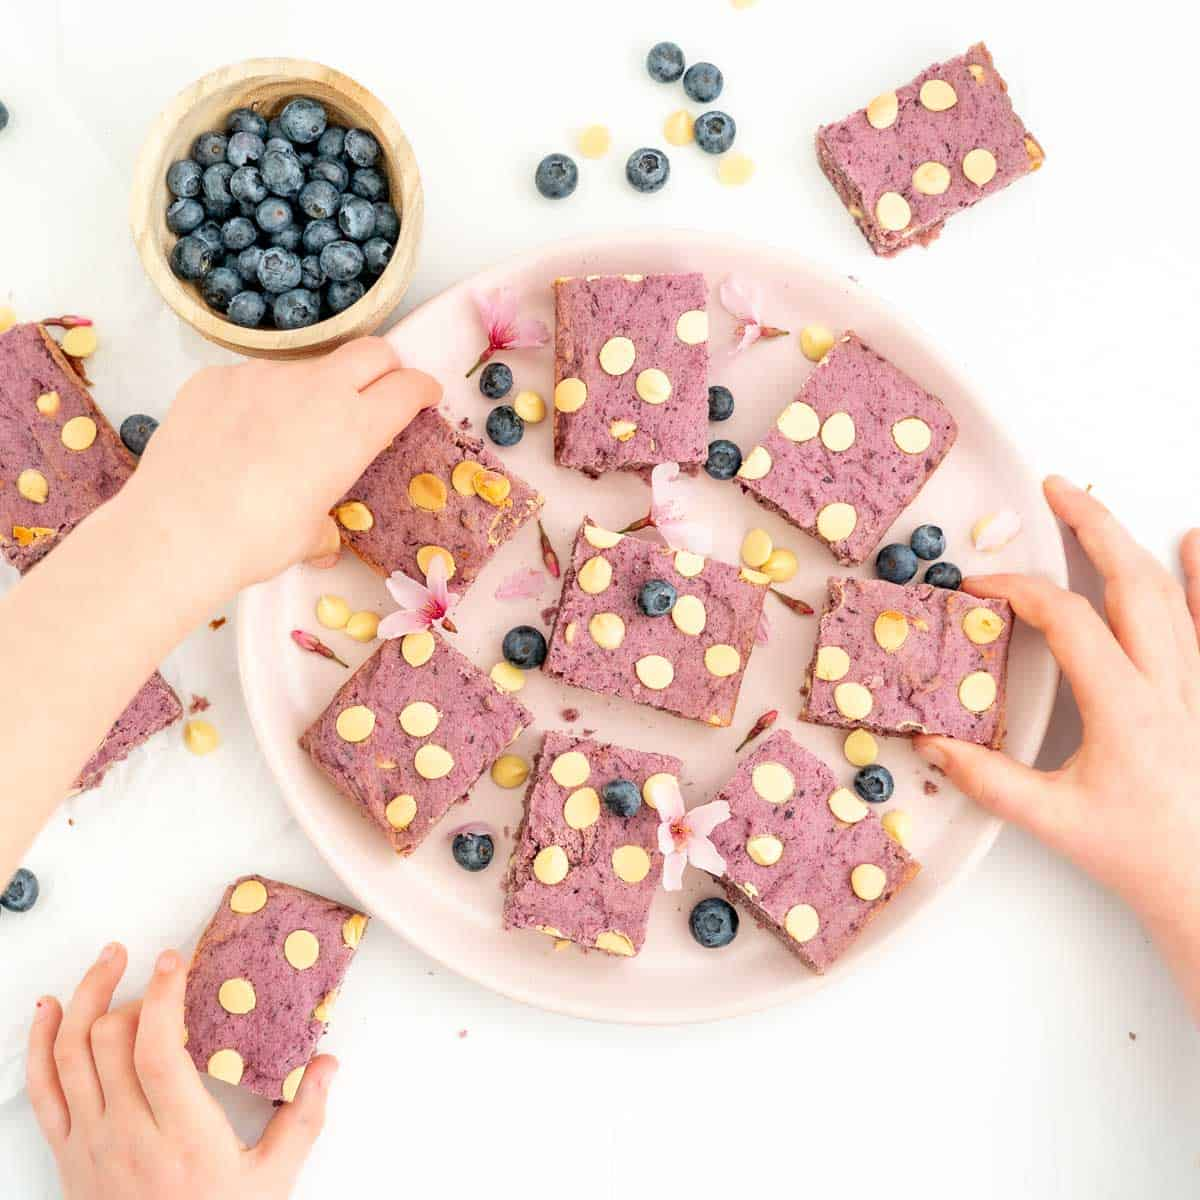 Three children's hands reaching for purple cookie bars sitting on a pink plate.